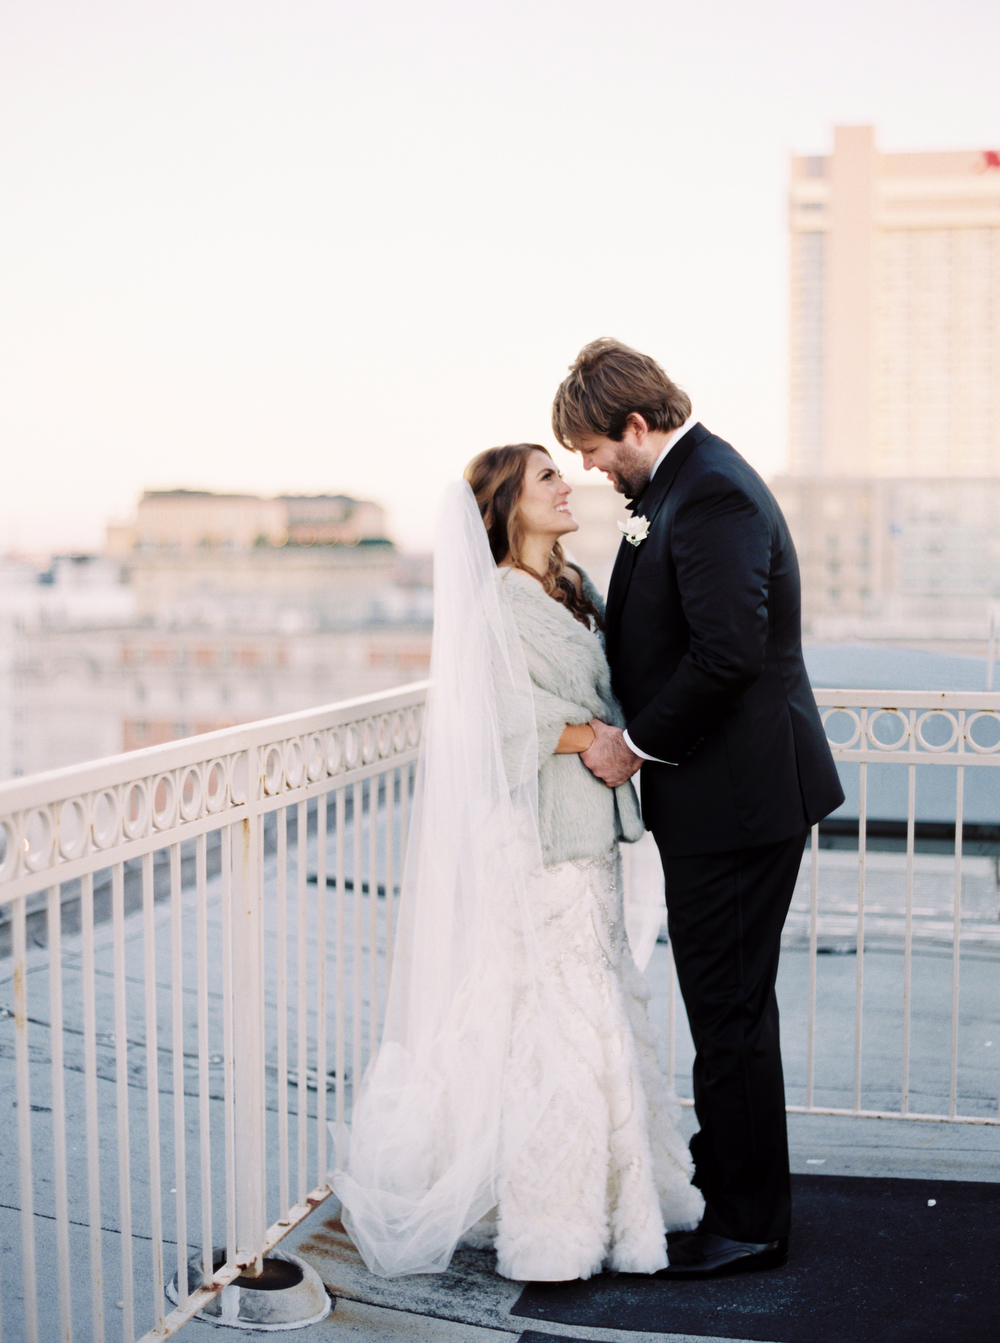 First look inspiration | Rooftop Reveal | Urban Wedding | New Orleans Skyline | How to transform an open ballroom with stunning decor | Sapphire Events | Greer G Photography | Board of Trade | White and Gold Wedding | Winter Wedding Inspiration | White and Green Wedding | Ballroom wedding